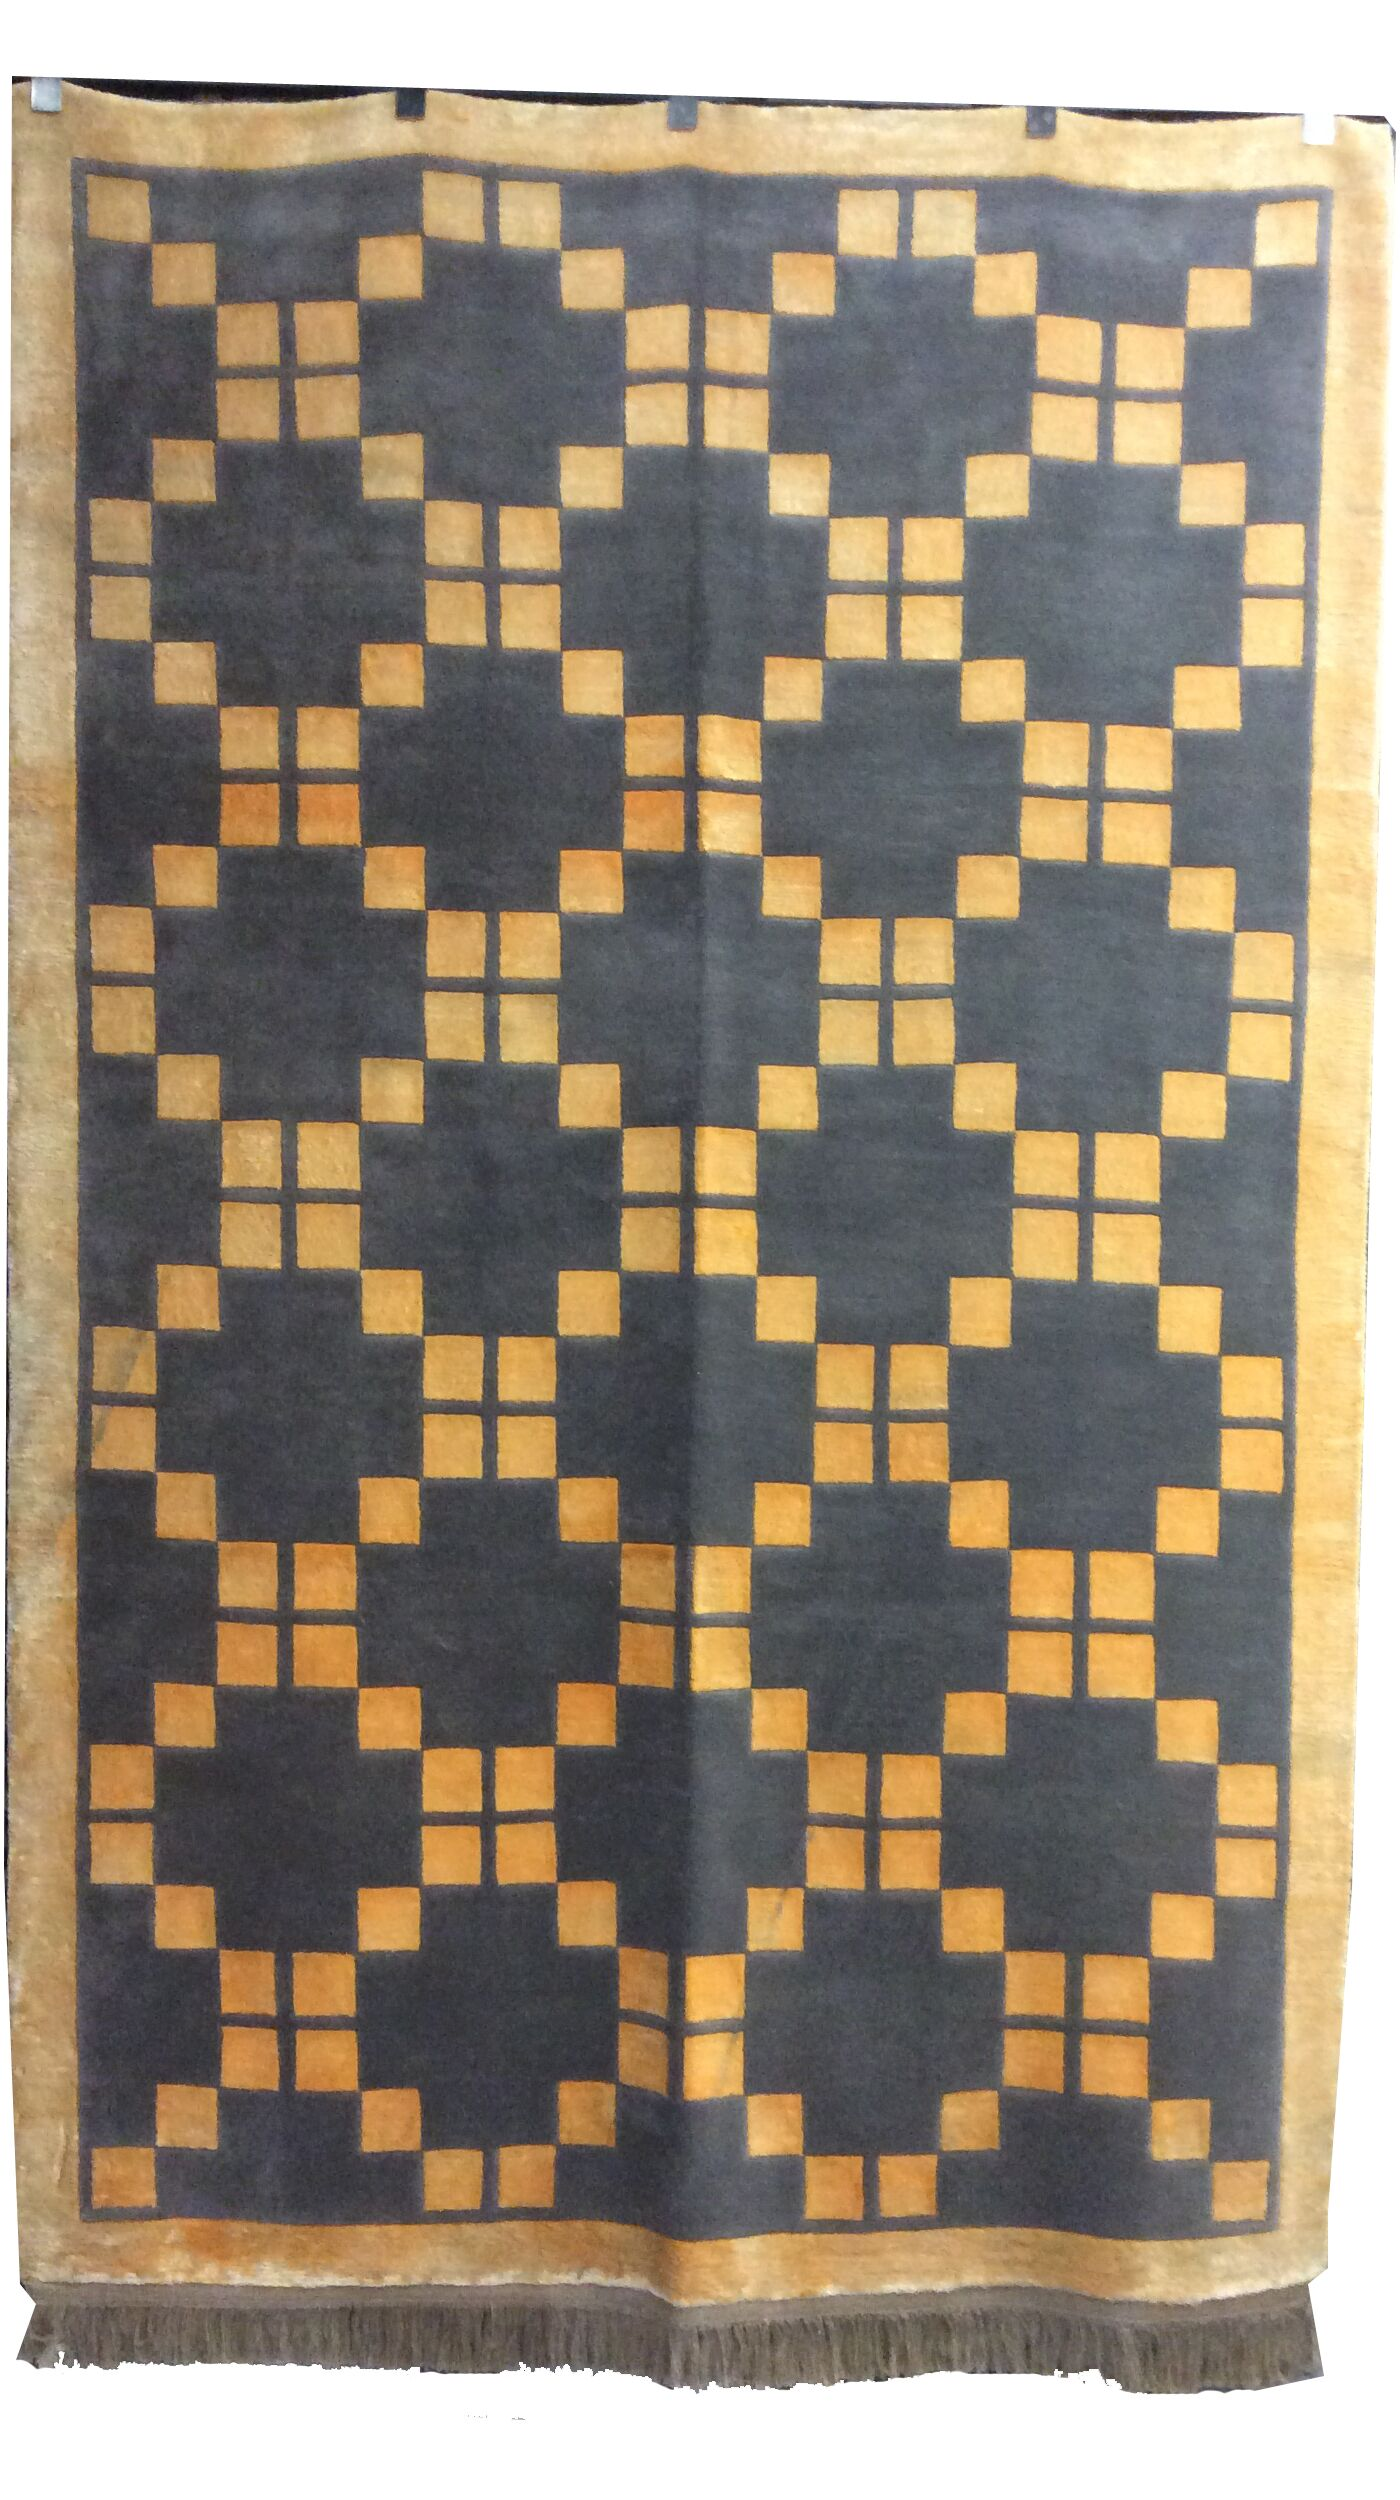 One-of-a-Kind Kohlmeier Hand-Knotted Wool Gray/Gold Area Rug